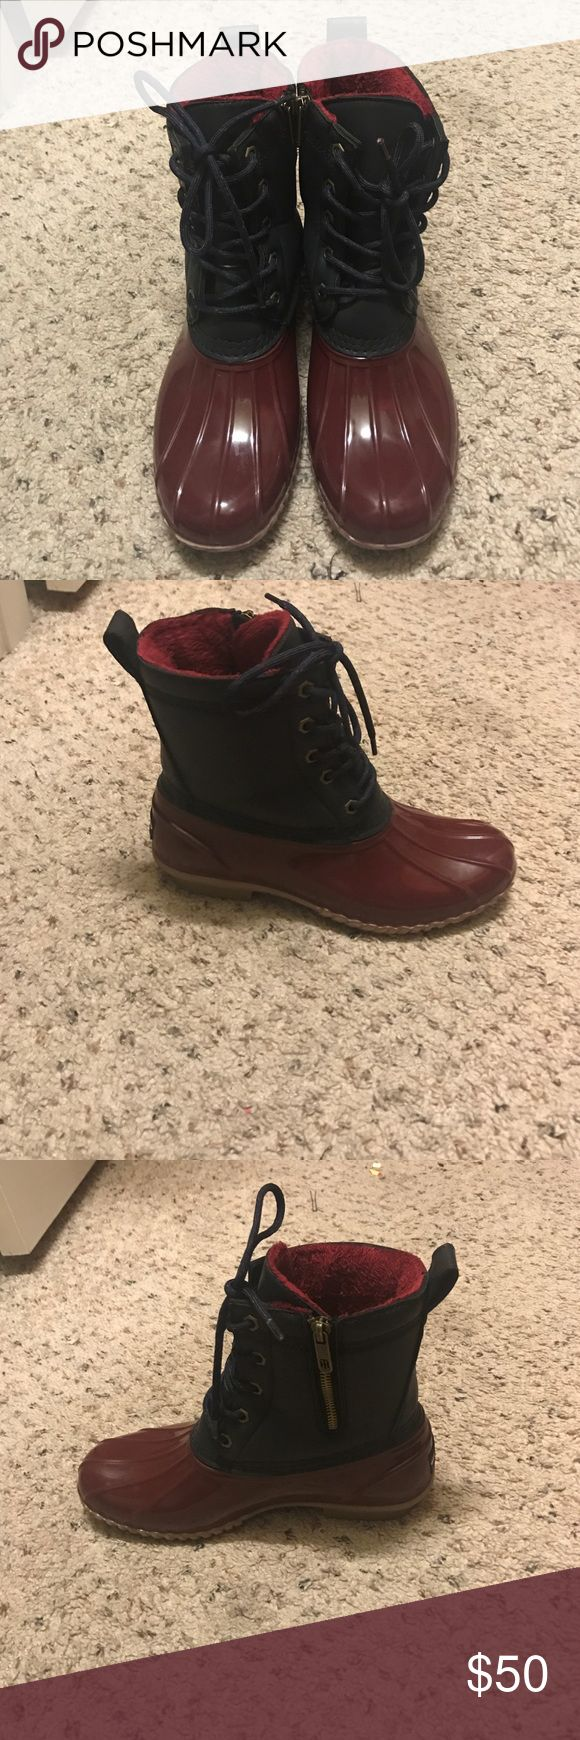 👢Tommy Hilfiger Duck Boots Burgundy and Navy Blue. Gold zipper and accents. Tommy Hilfiger Tommy Hilfiger Shoes Ankle Boots & Booties